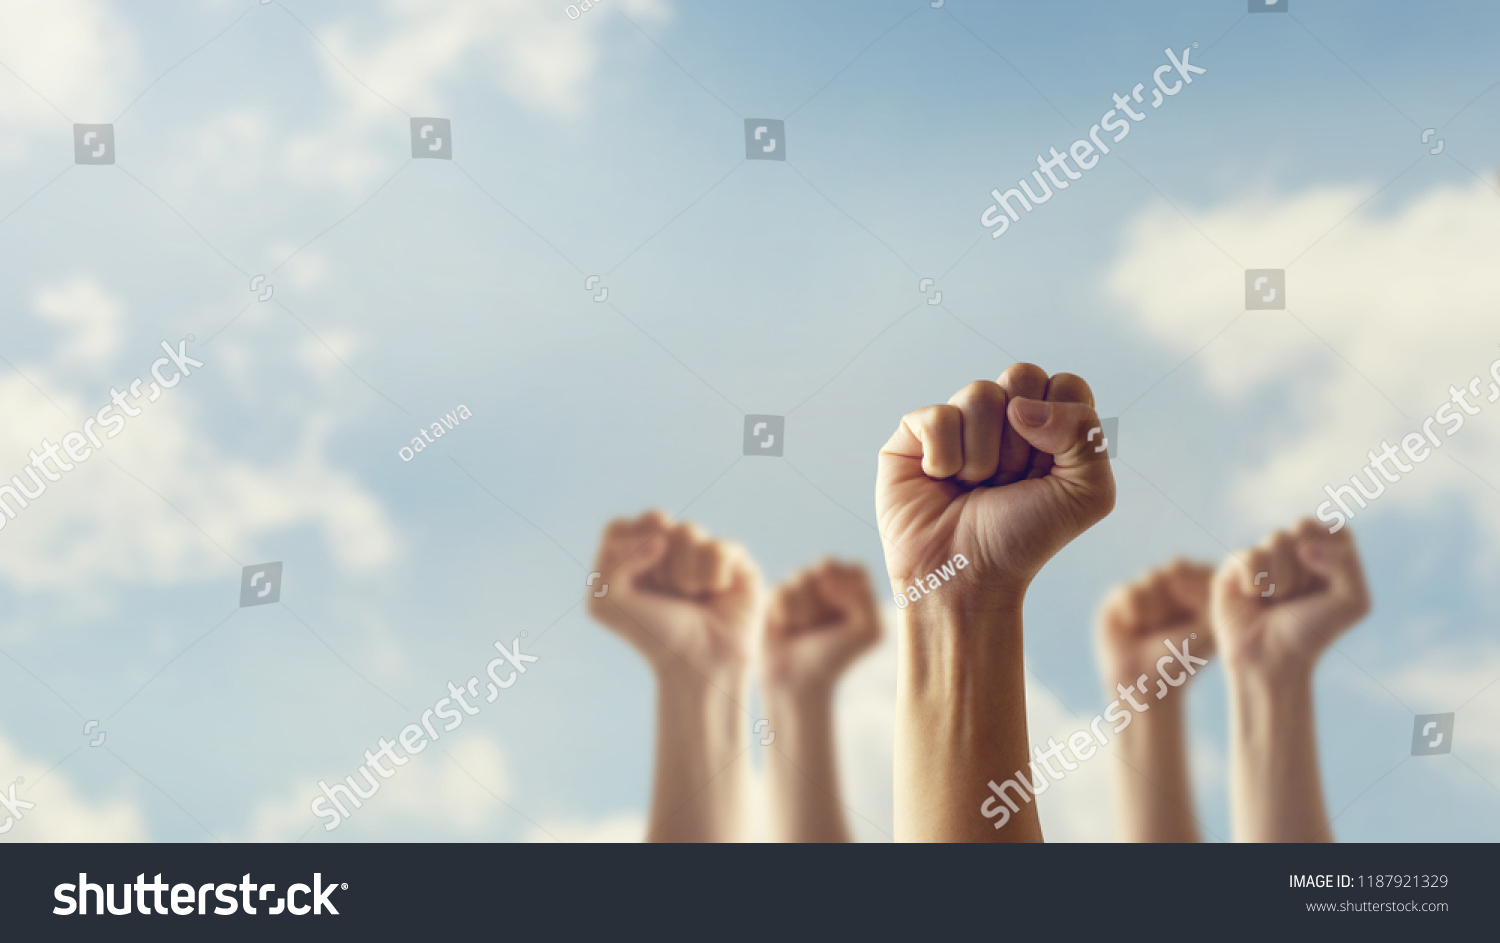 Peoples raised fist air fighting and sunlight effect, Competition, teamwork concept, background space for text. #1187921329